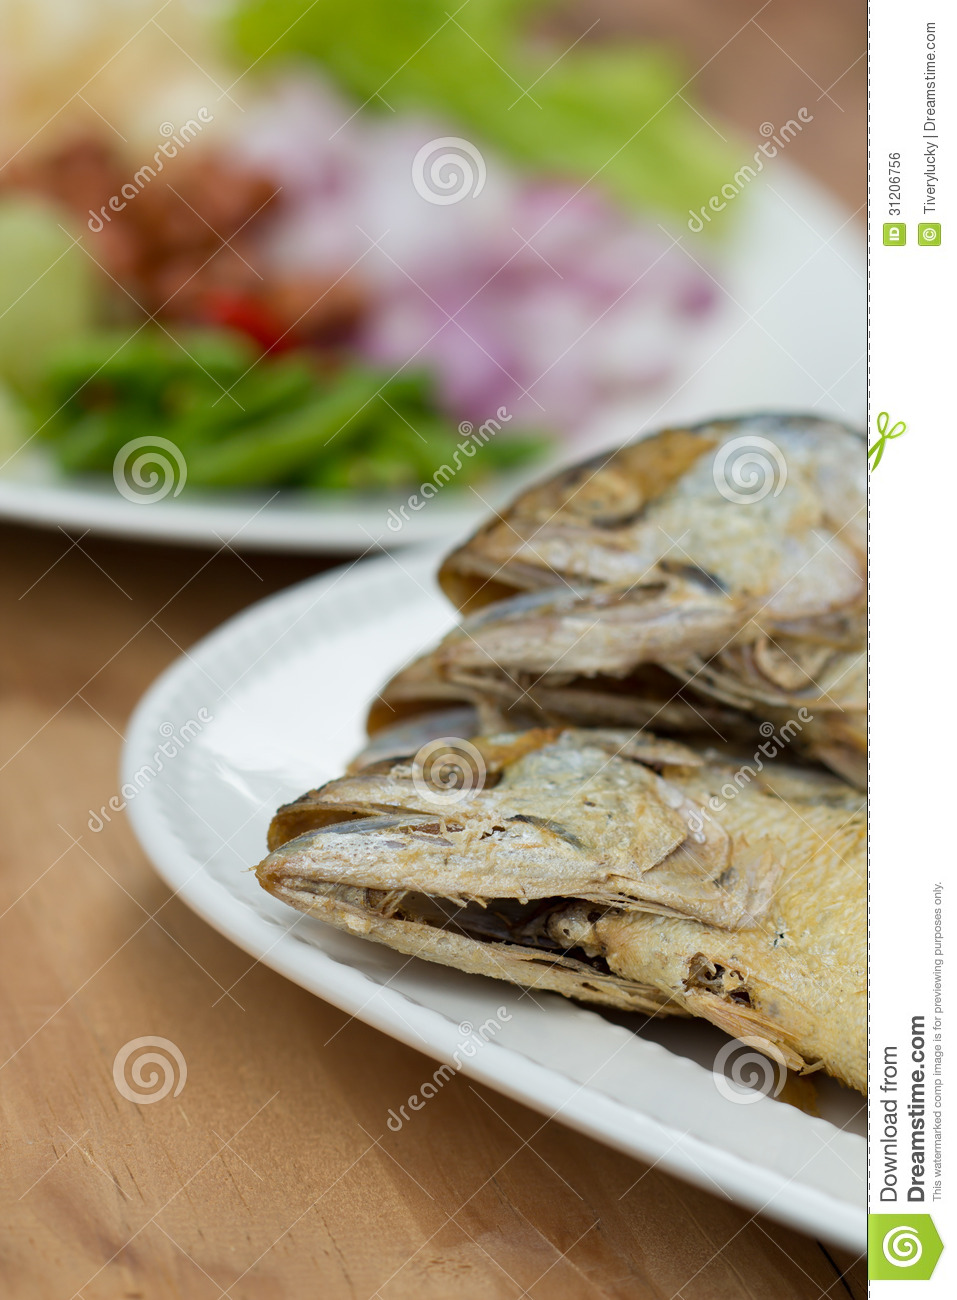 Fried fish royalty free stock image image 31206756 for Side dishes for fried fish